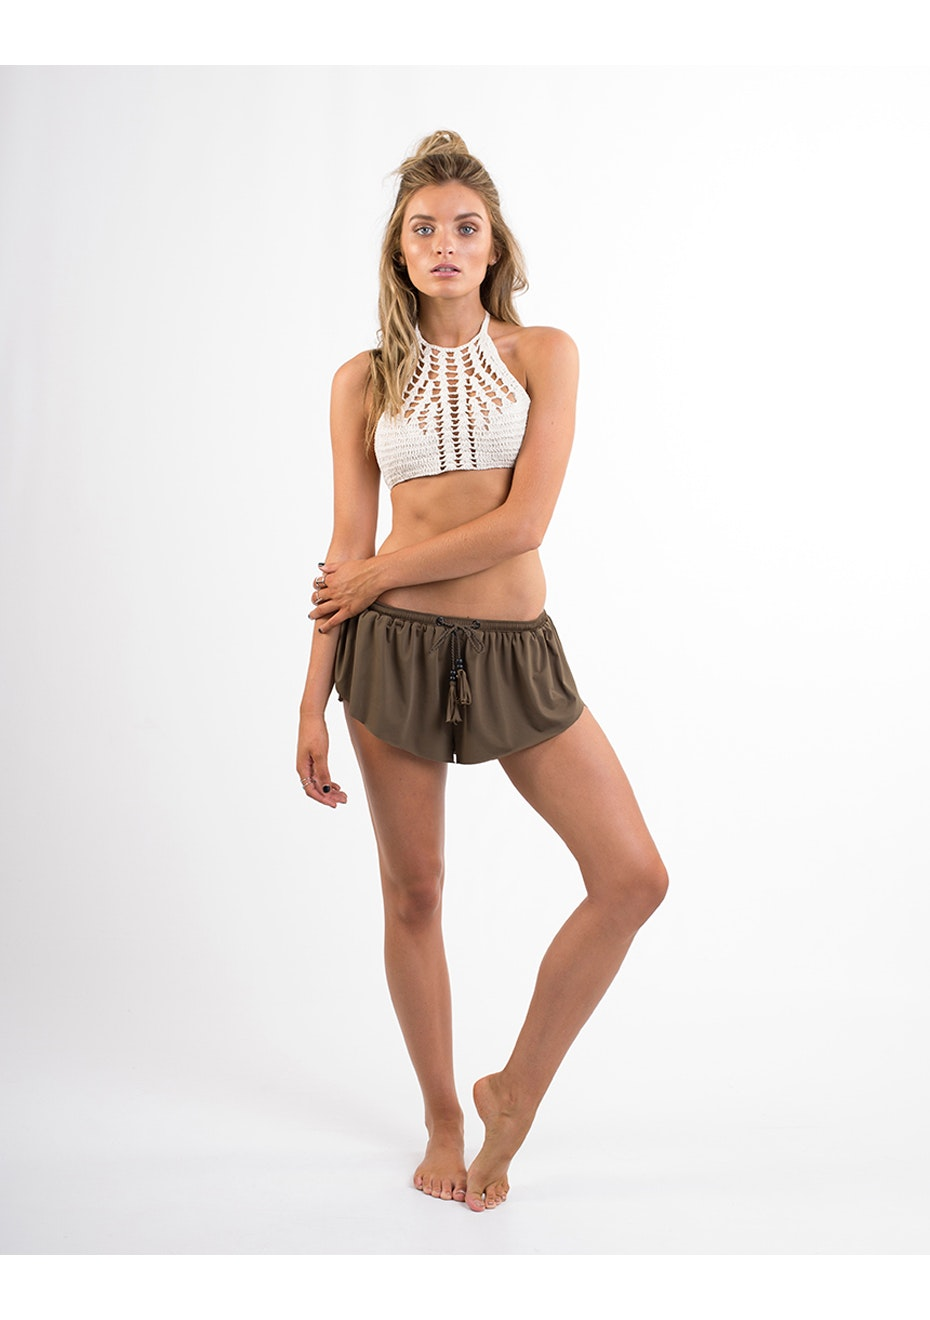 All About Eve - Eve Mermaid Short - Khaki